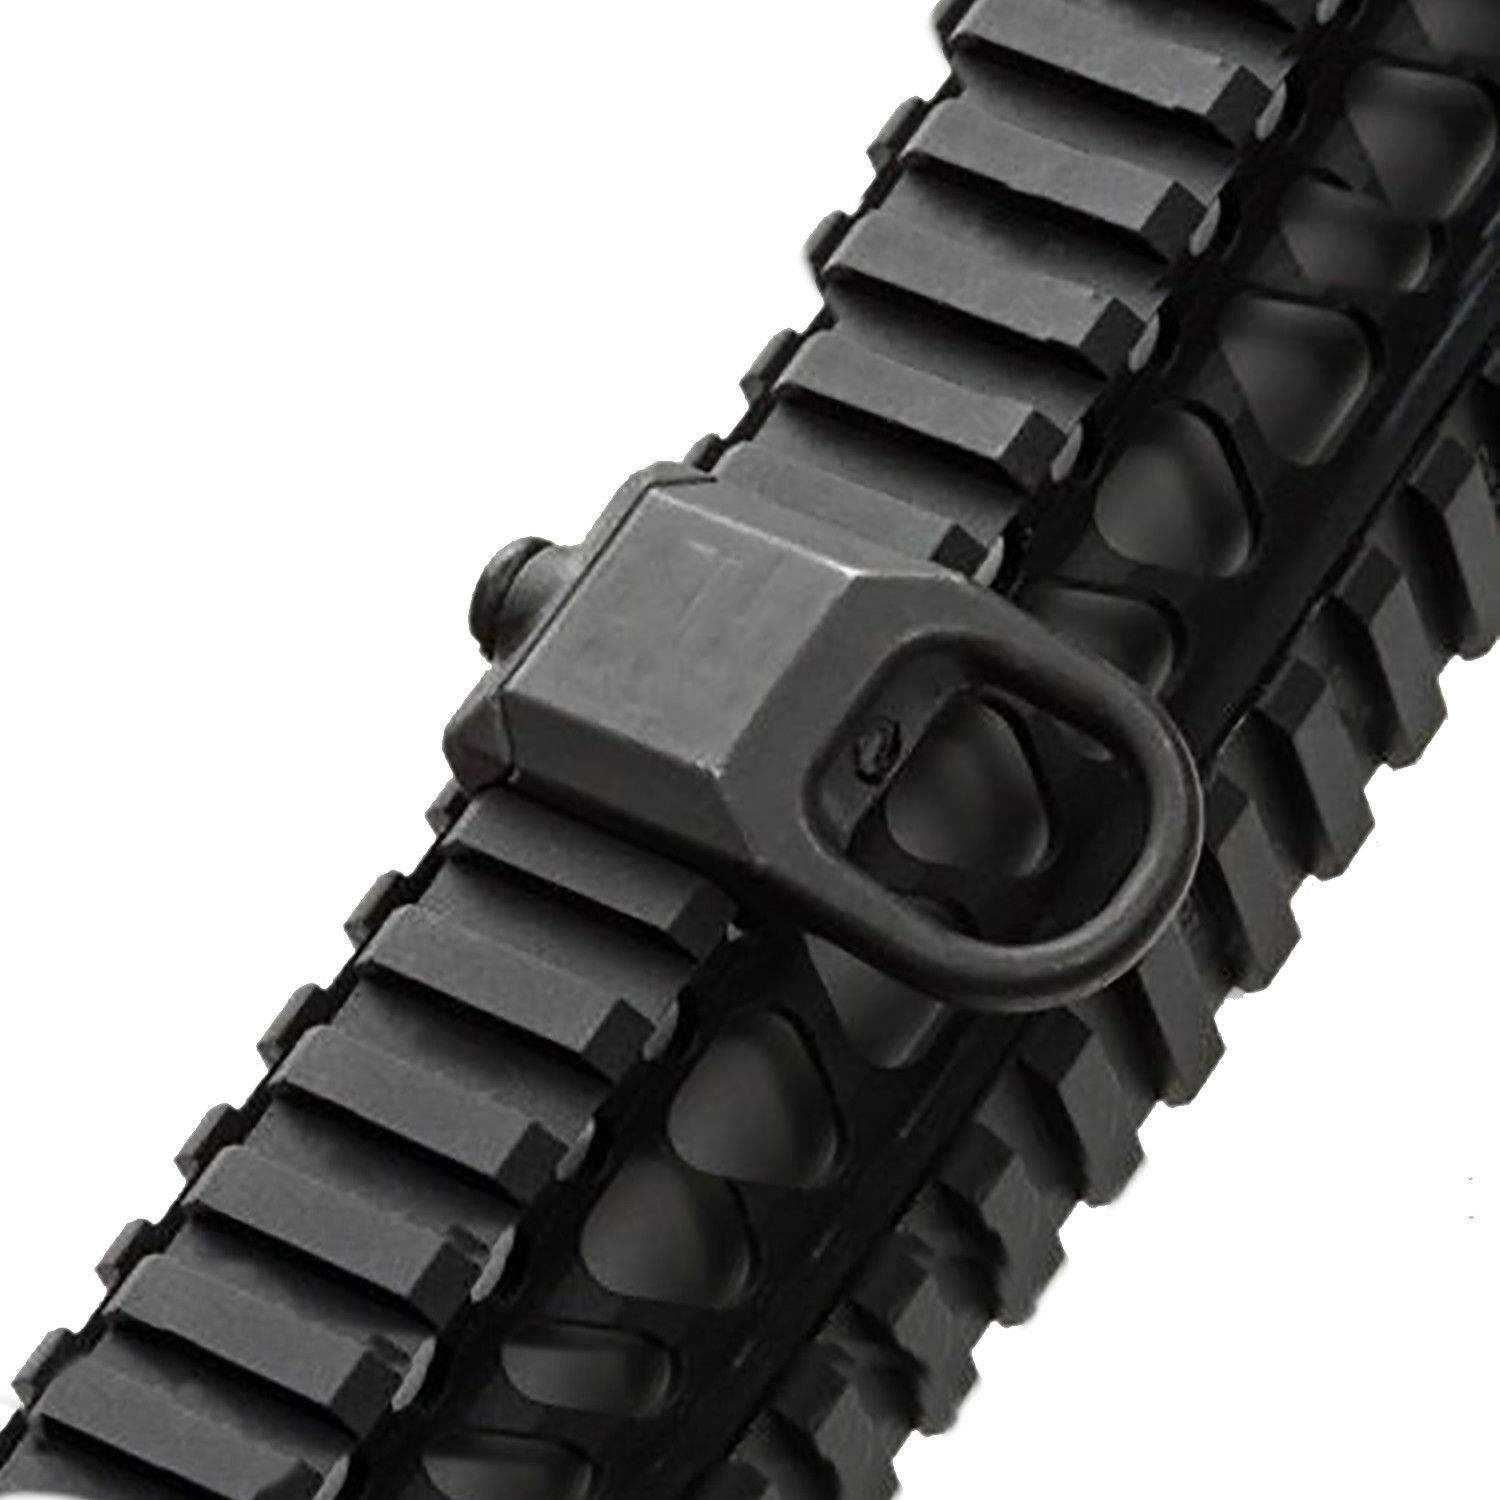 New Sling Mount Plate Adaptor Attachment fits 20mm Picatinny Rail Adapter Black